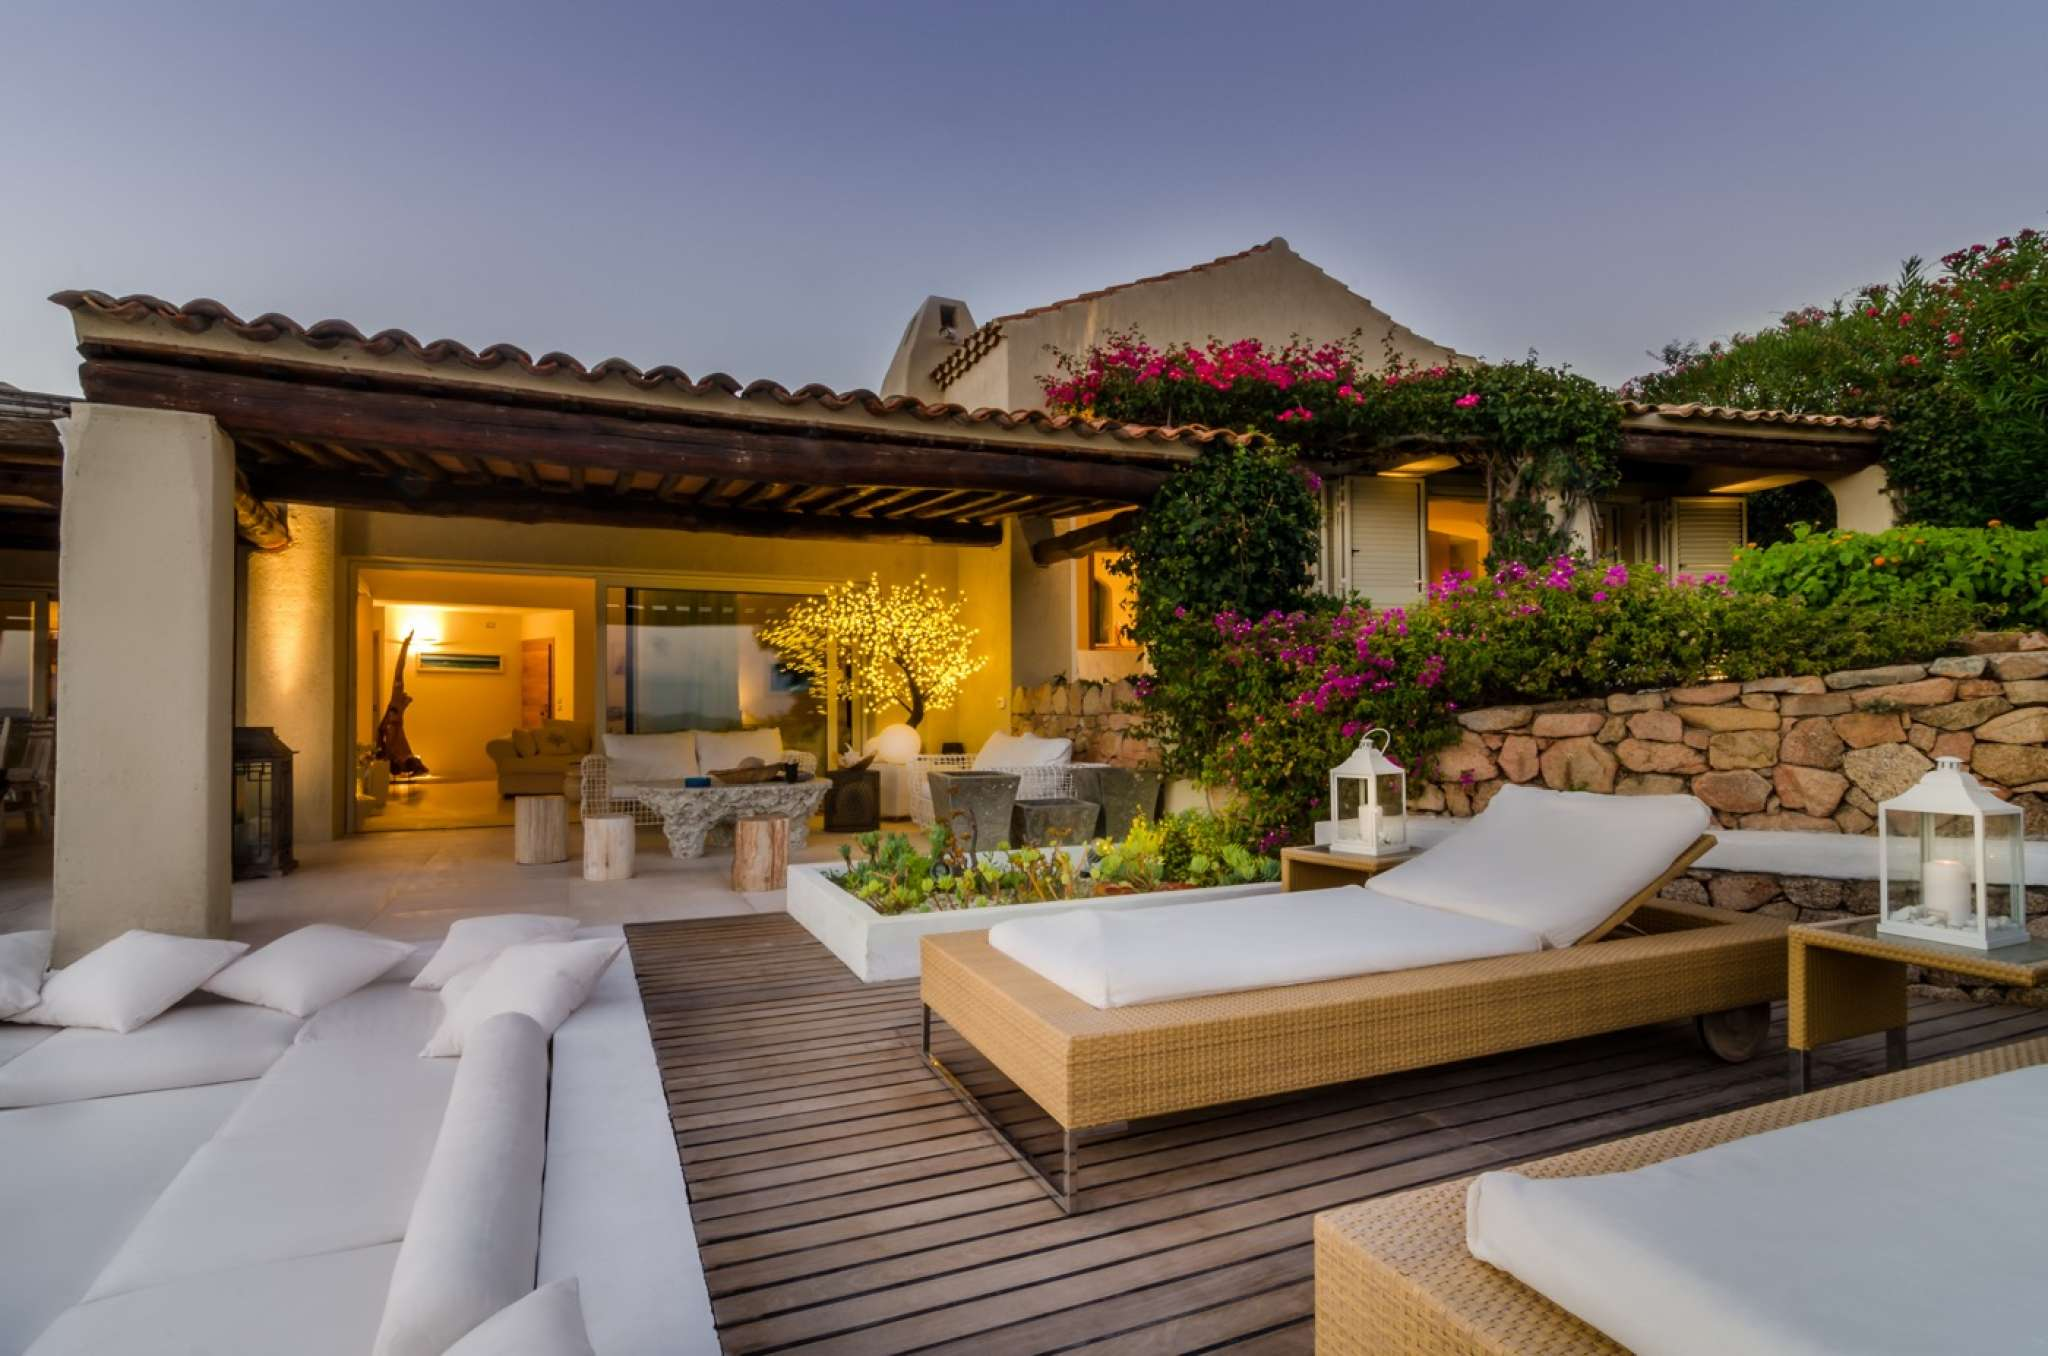 Dream villa a property for rent for 10 people on the for Arredi costa smeralda